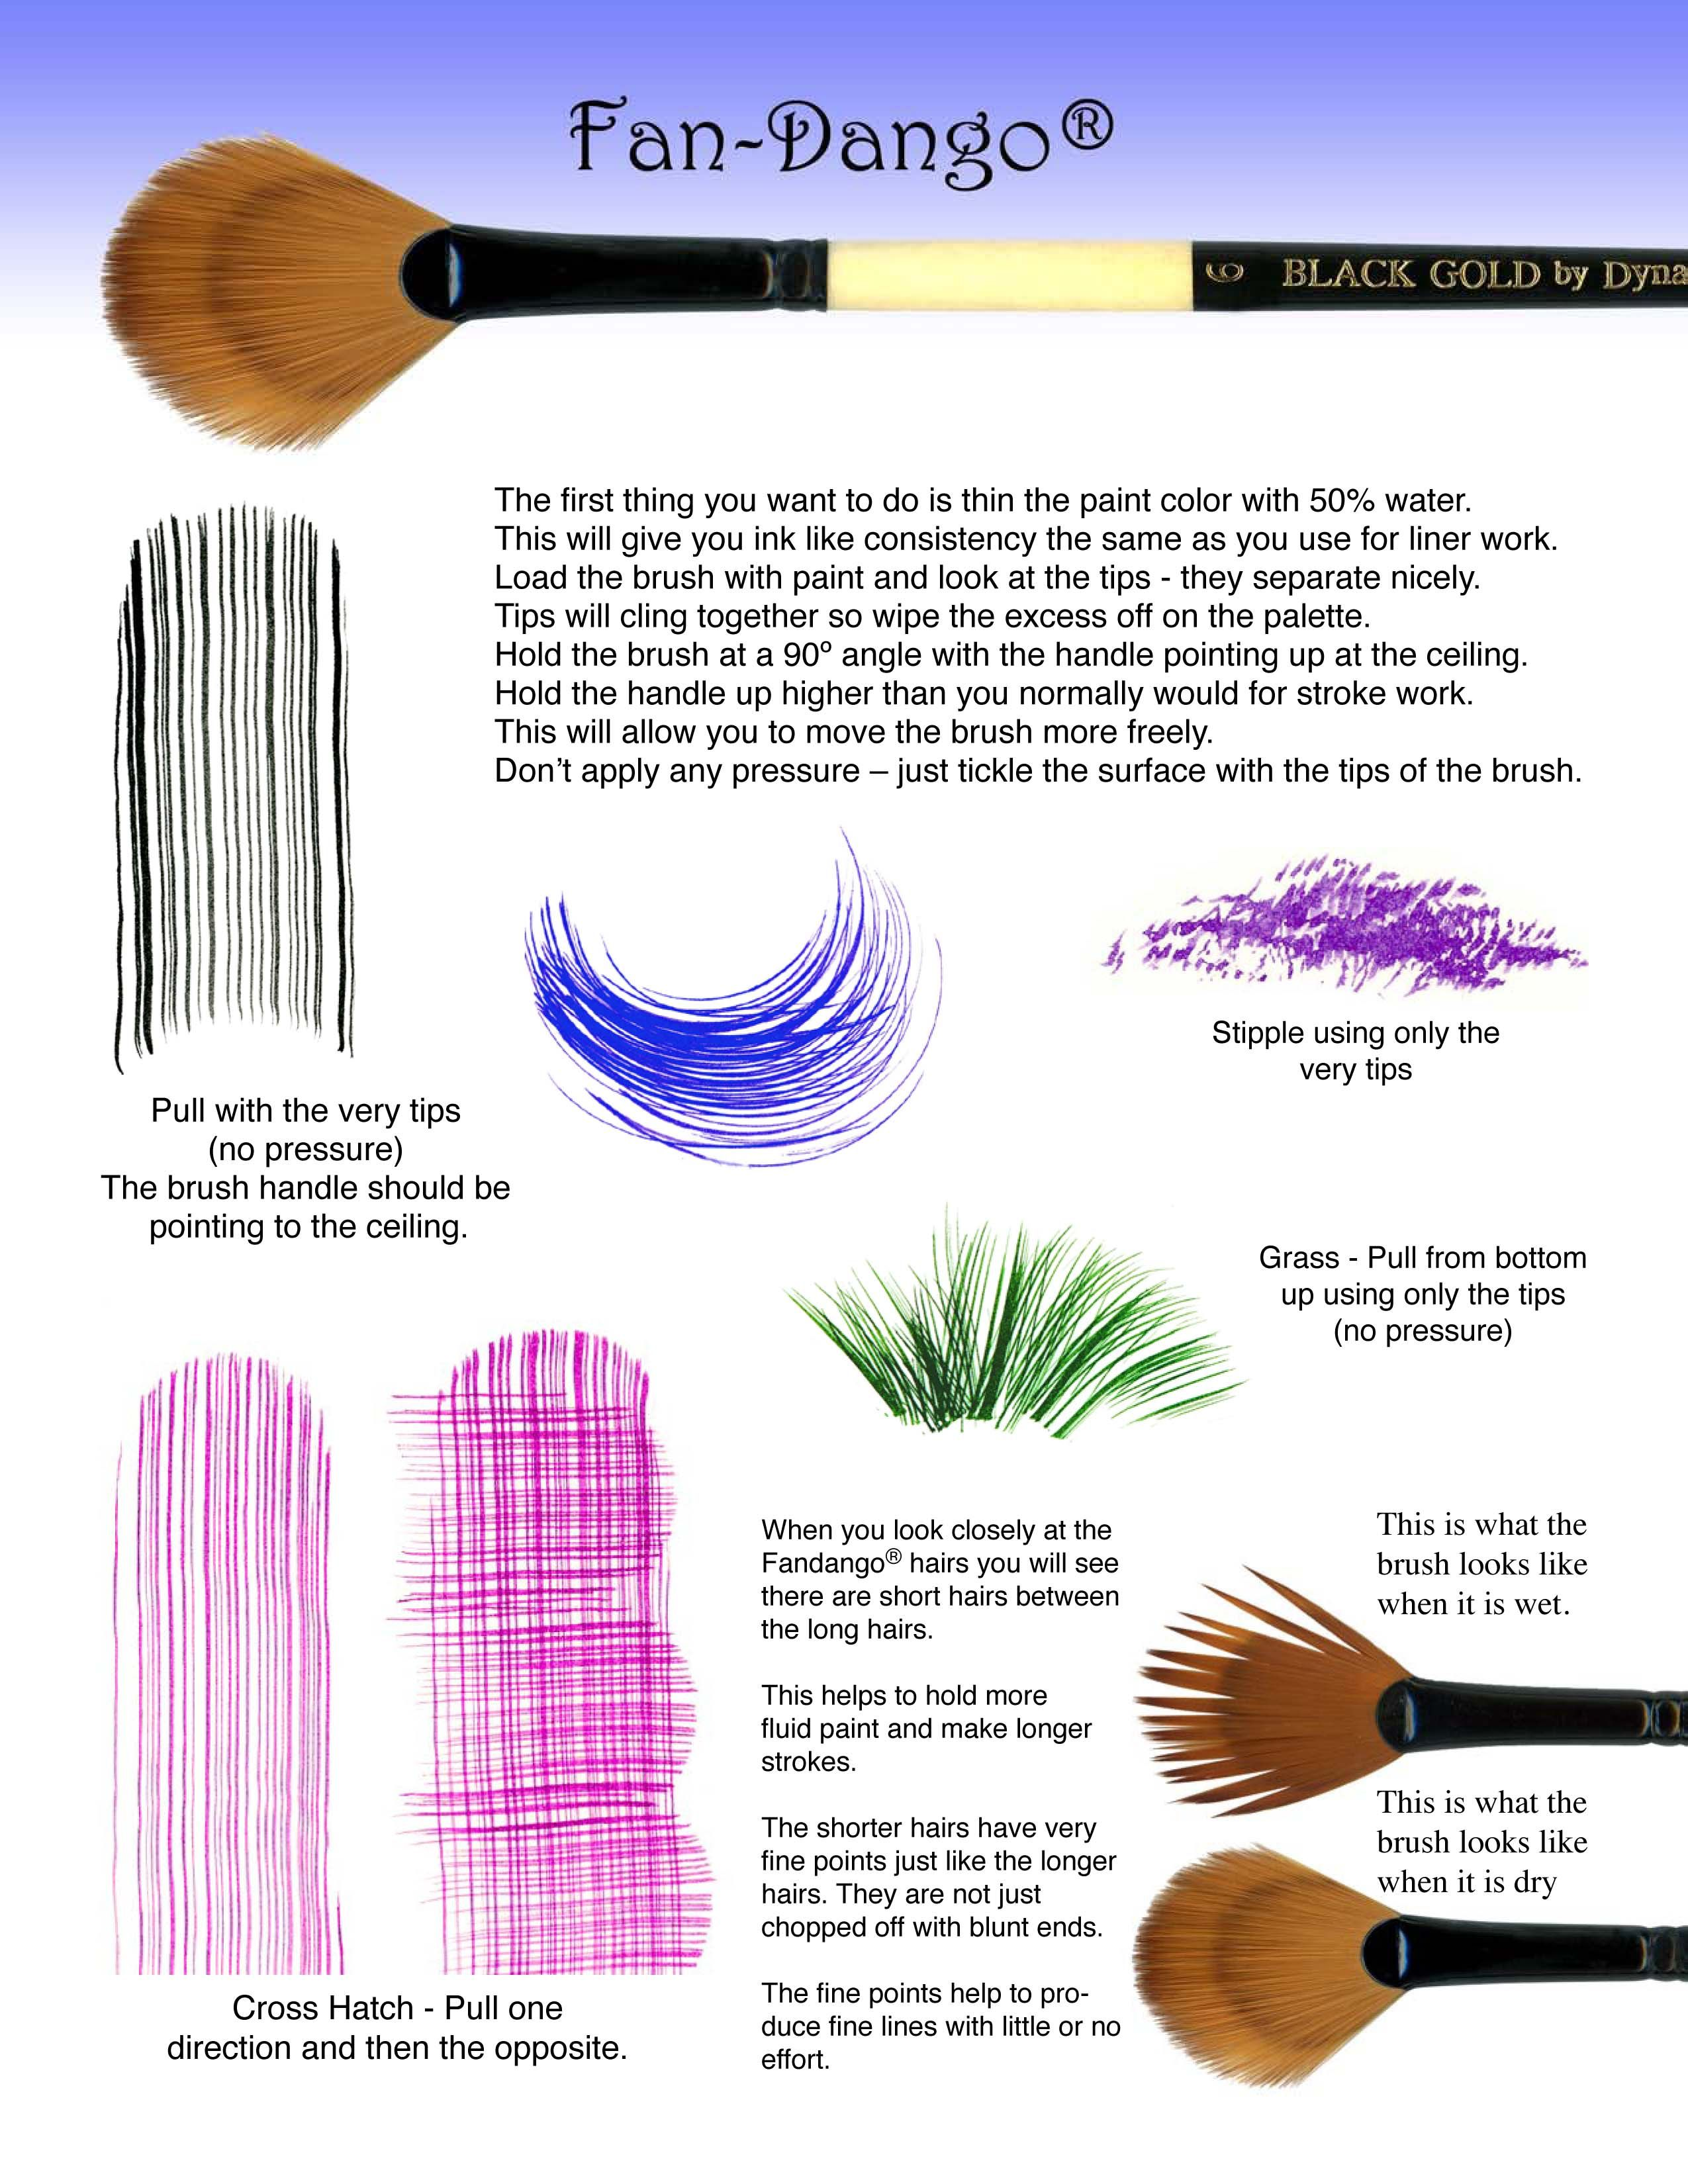 Really Good Site For Brush Strokes And Demos